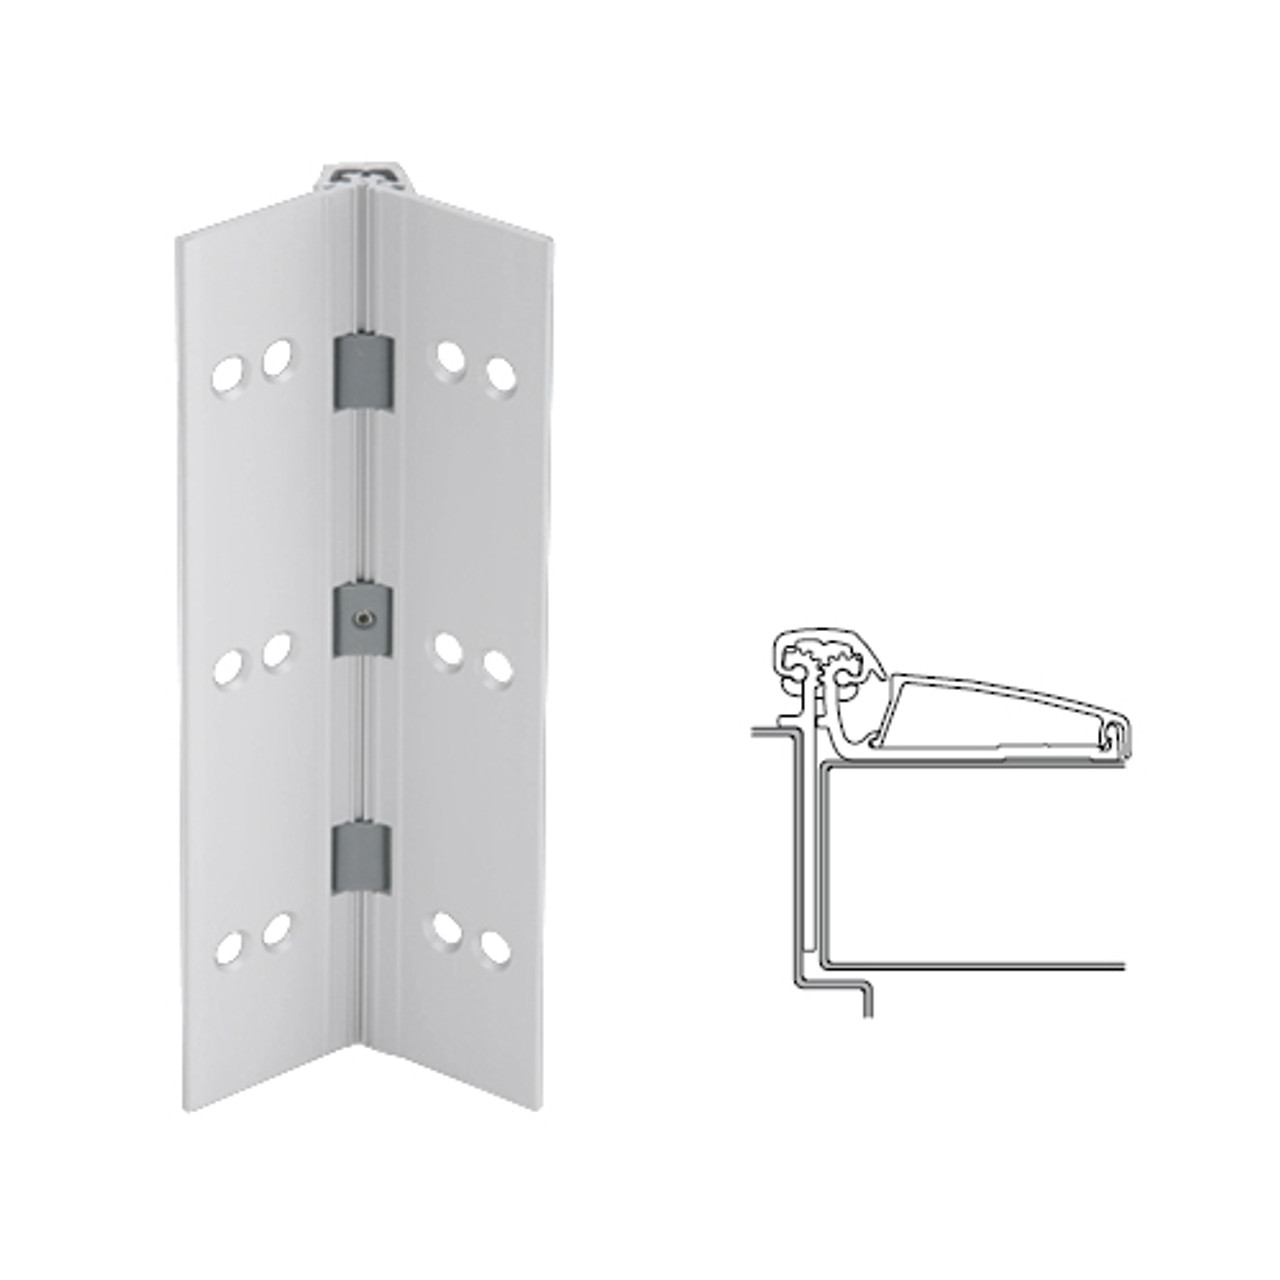 046XY-US28-95-SECHM IVES Adjustable Half Surface Continuous Geared Hinges with Security Screws - Hex Pin Drive in Satin Aluminum